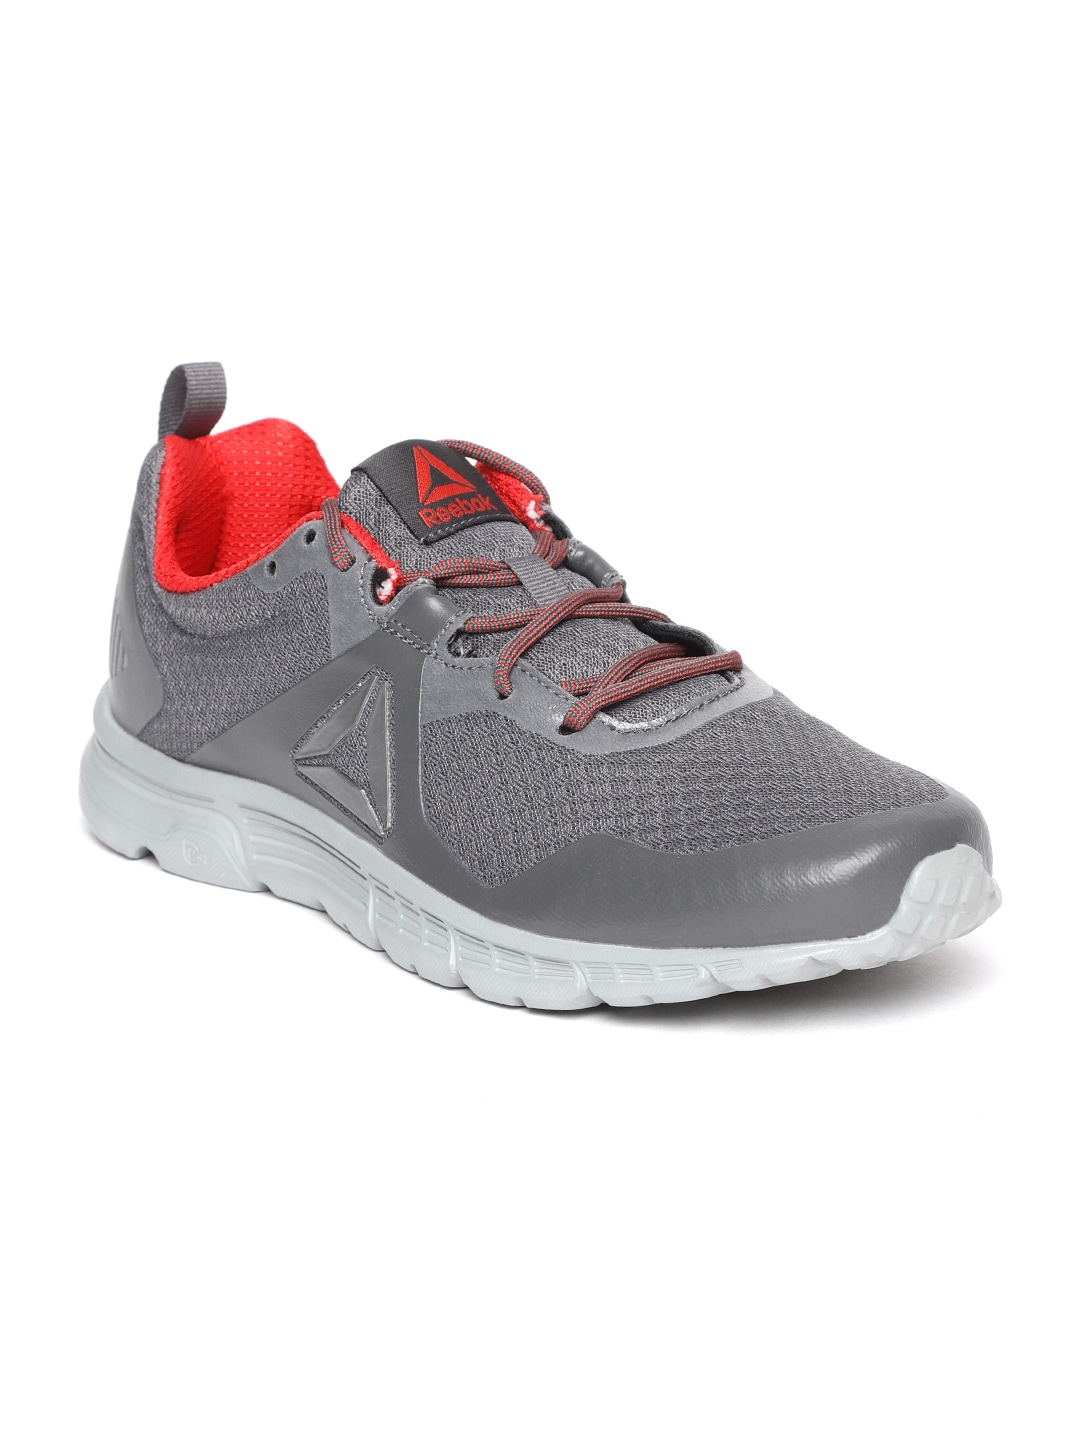 6a4280940cd7 Reebok Shoes - Buy Reebok Shoes For Men   Women Online